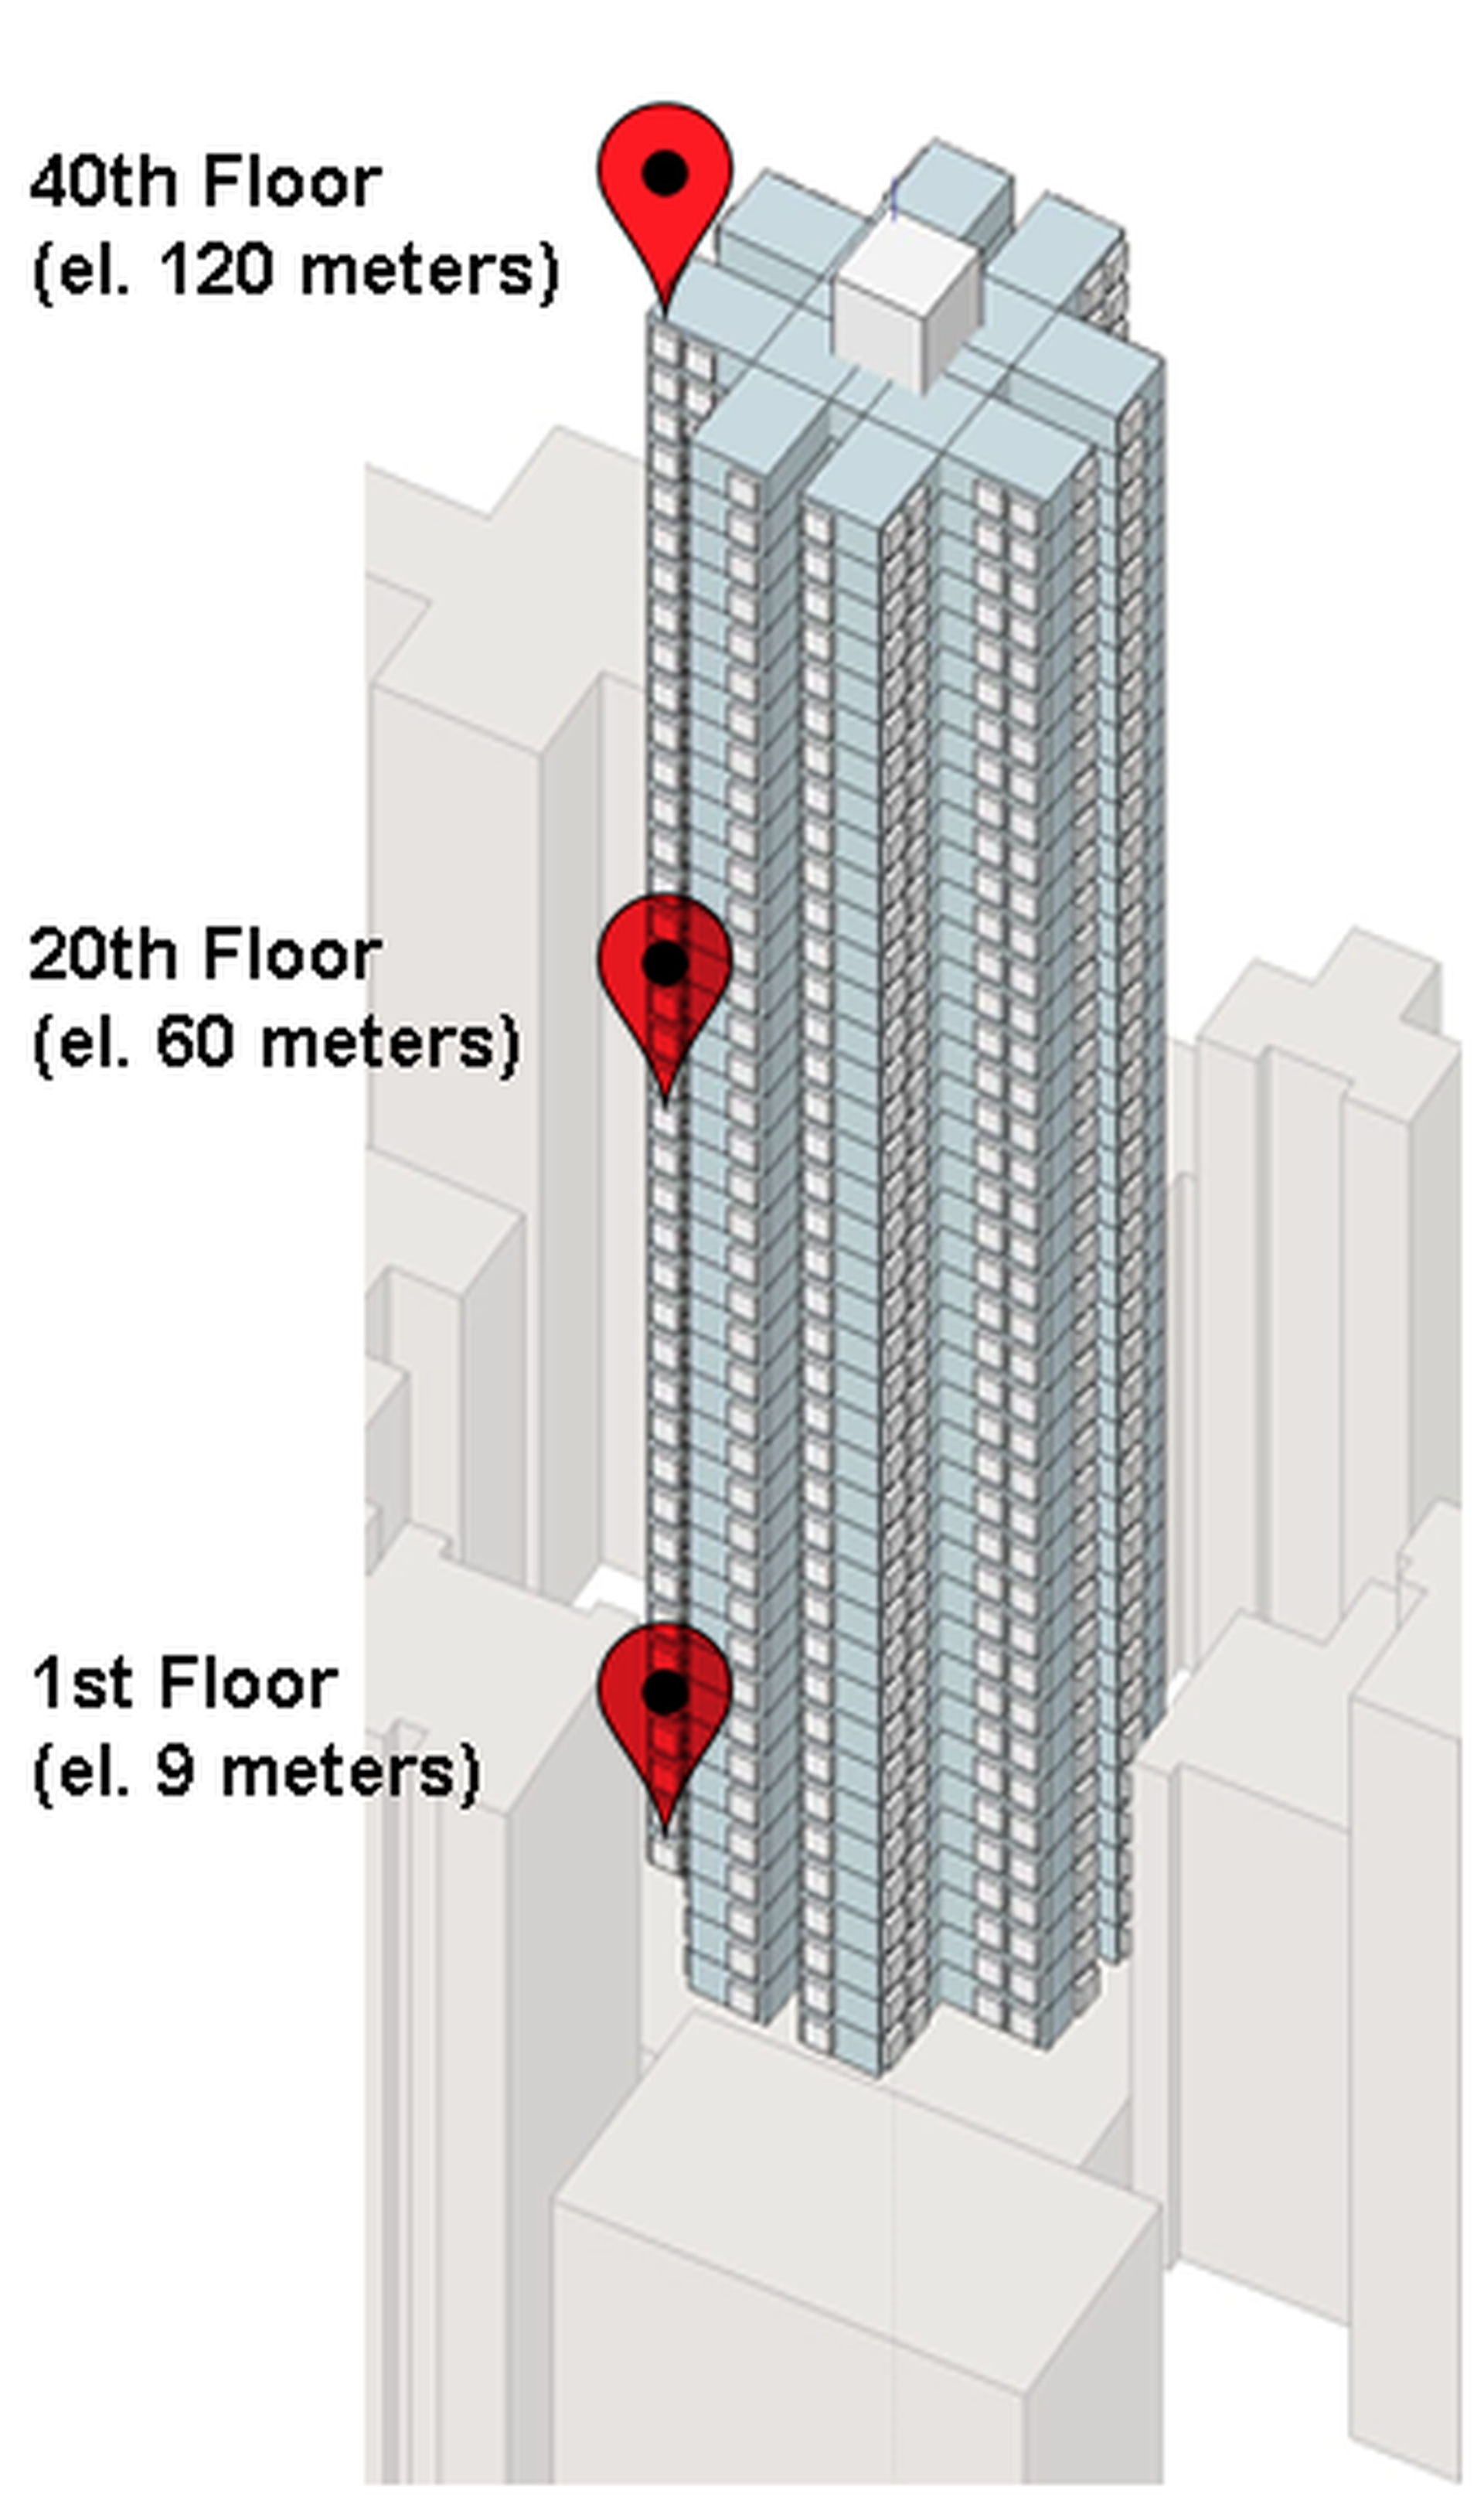 High-rise Residential Building Enclosure: Adaptive Strategies for the Vertical Climatology of Hong Kong